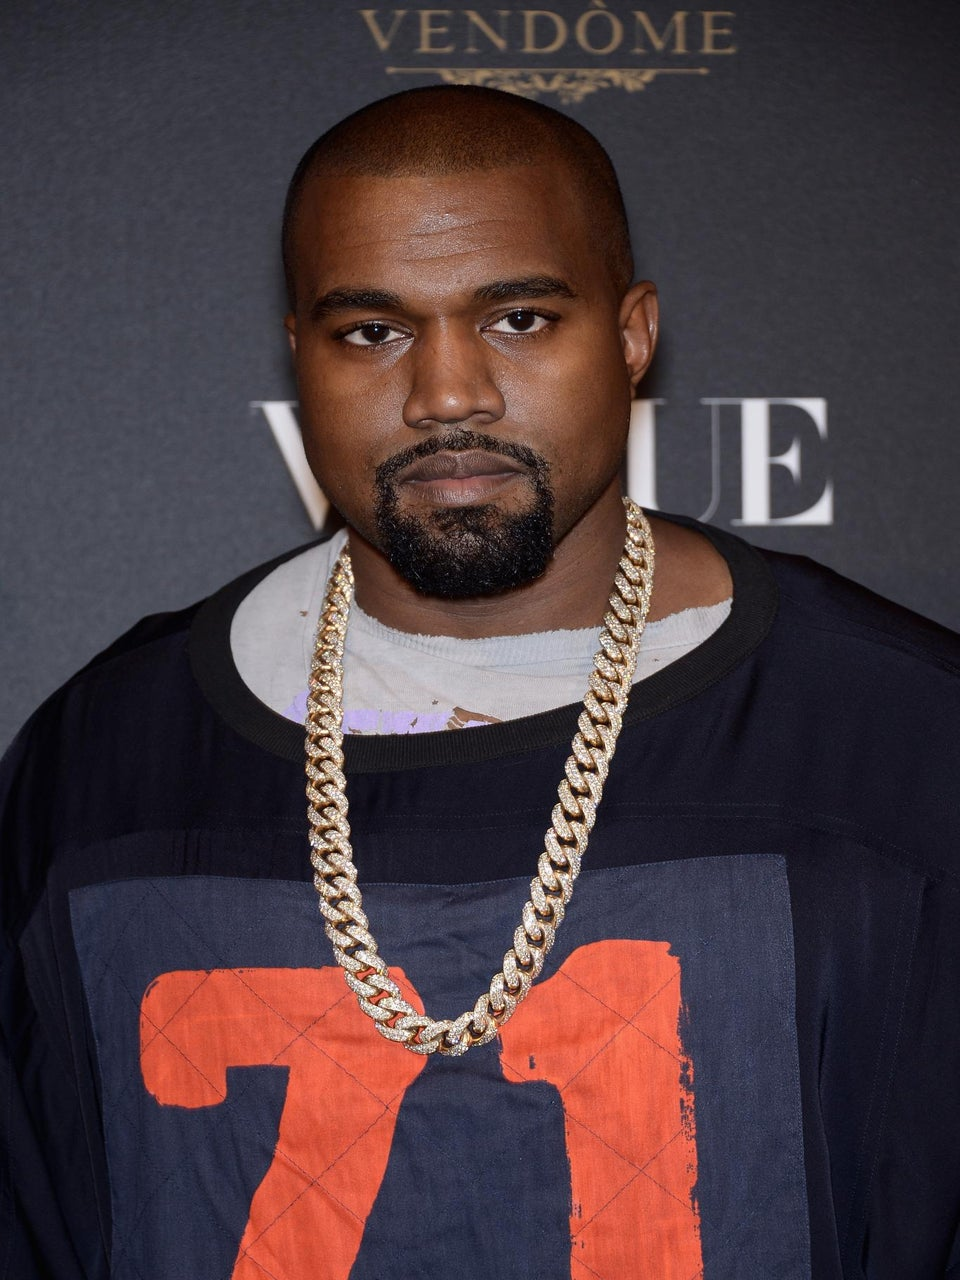 Kanye West Pays Tribute to Phife Dawg During Memorial Service